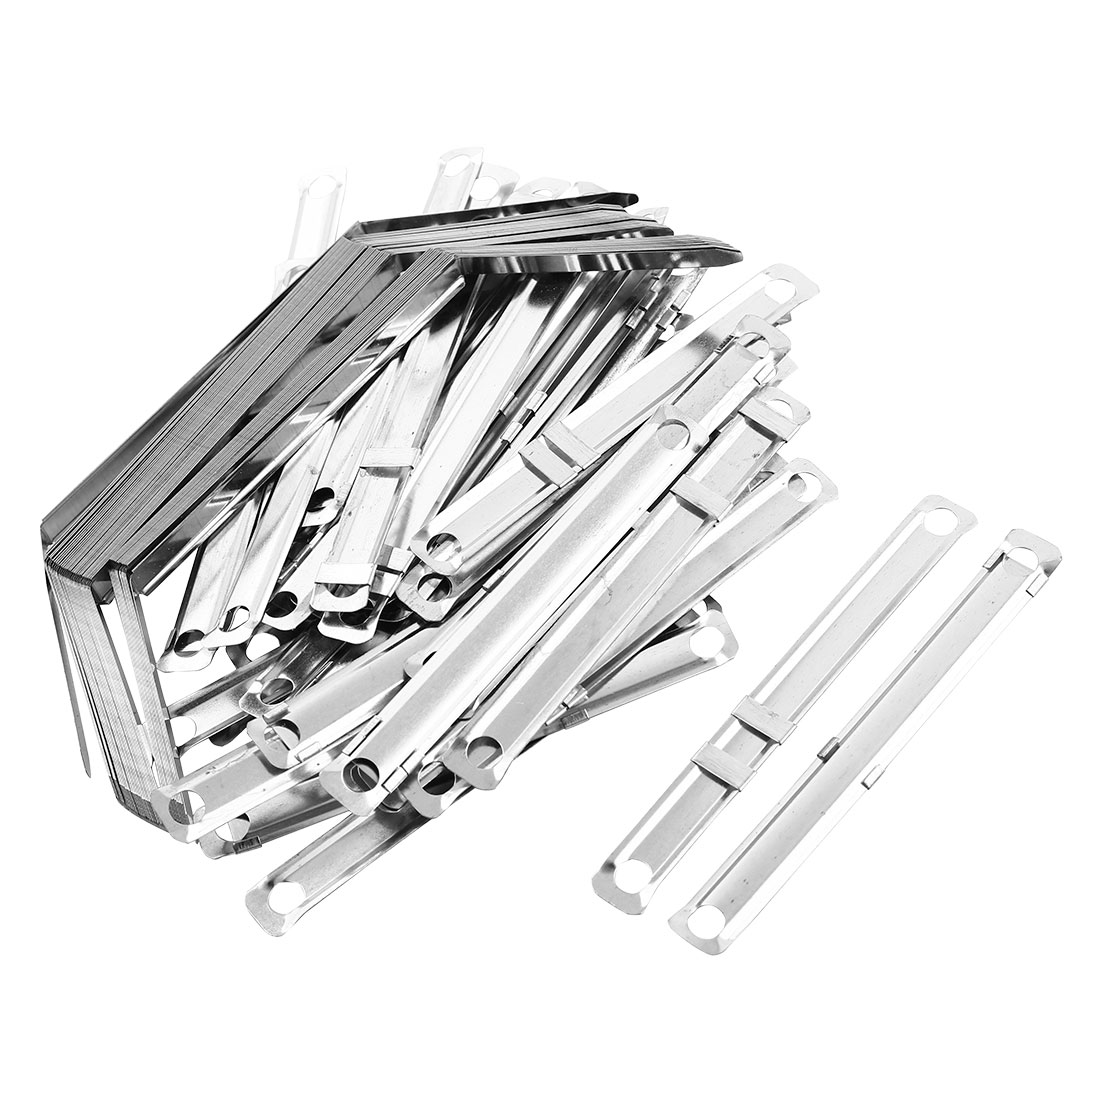 40 Sets Silver Tone Metal Prong Documents Files Clip Paper Fasteners